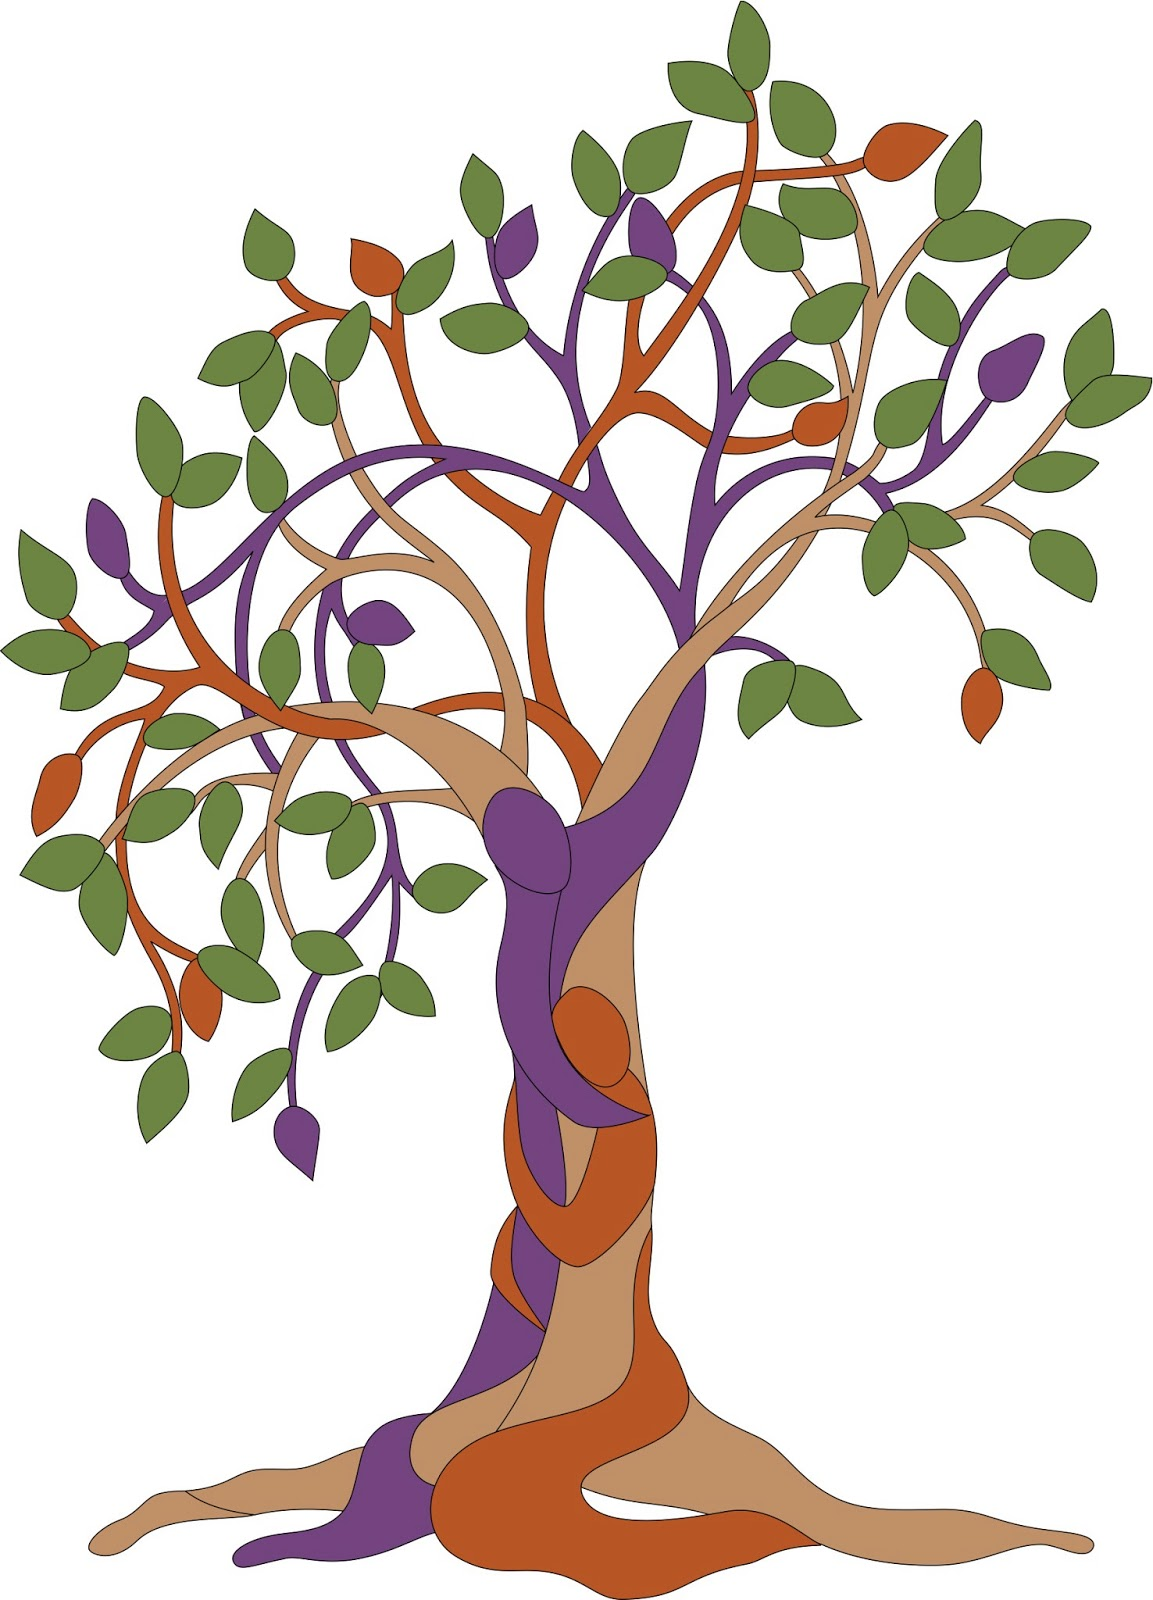 Vine on tree clipart.